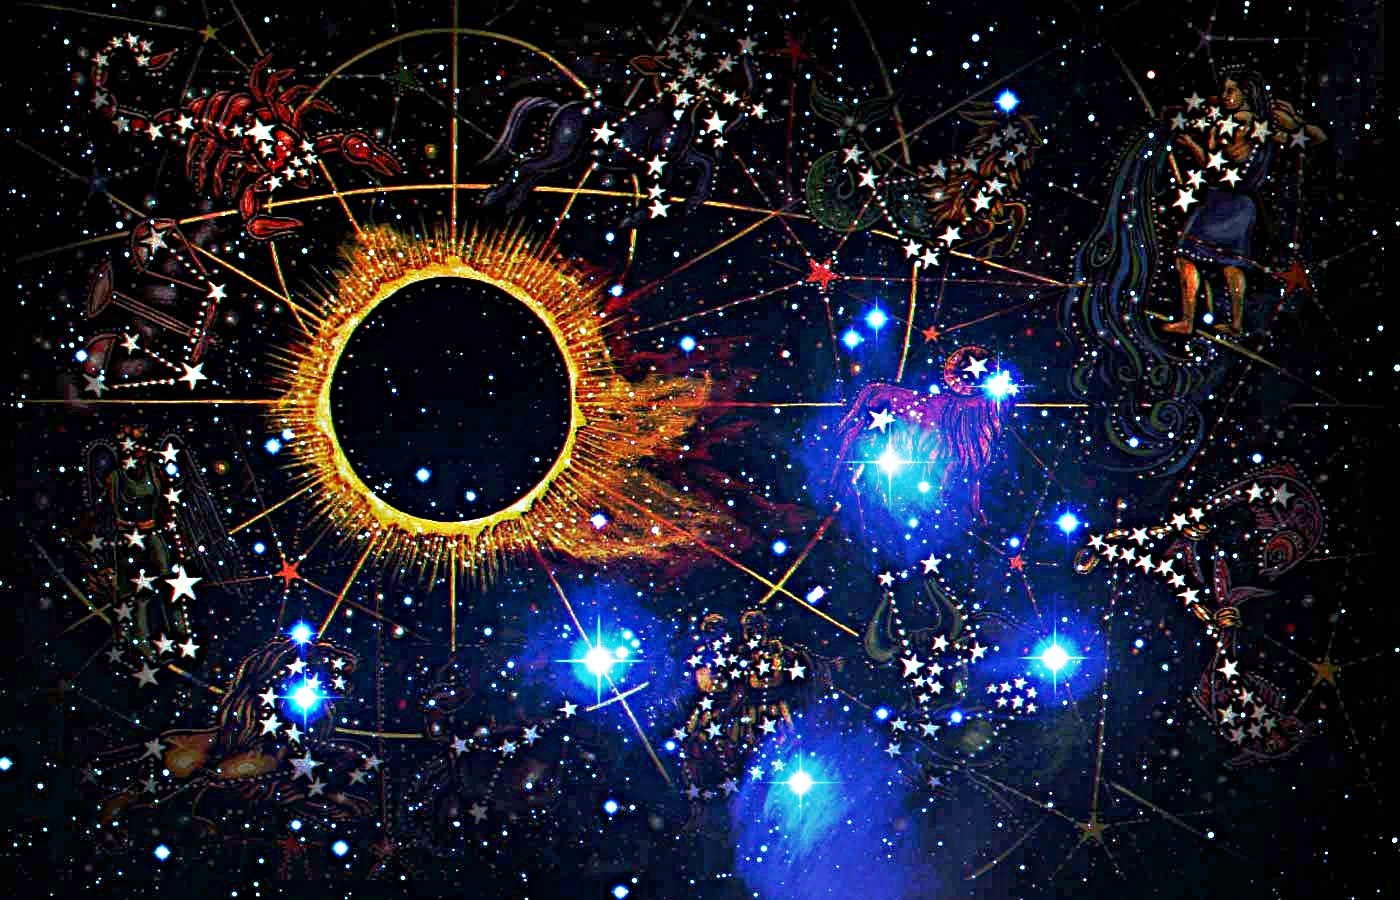 apni astrology astrology wallpapers and photos